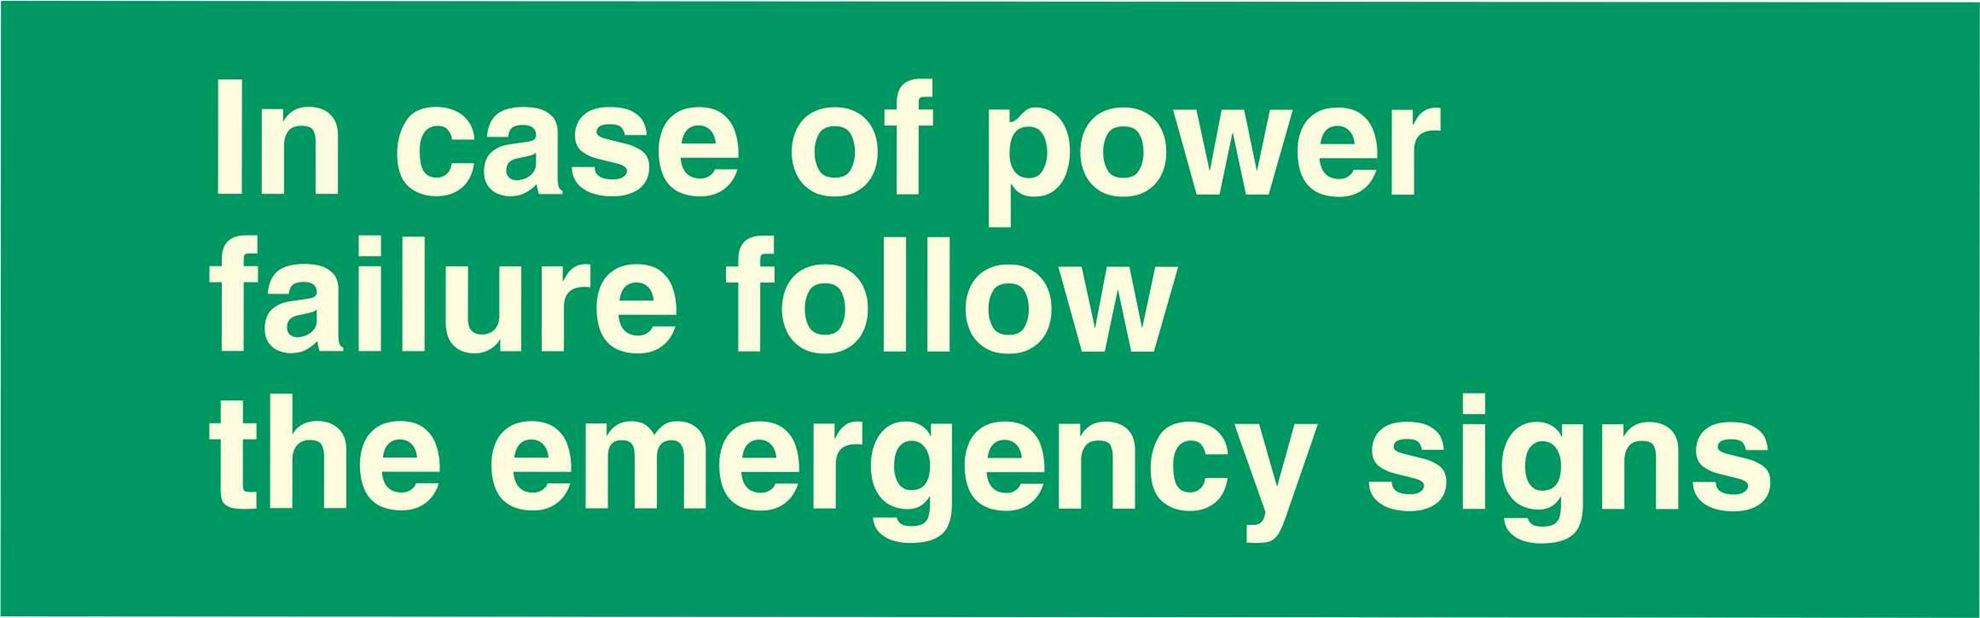 In case of power failure follow the emergency signs